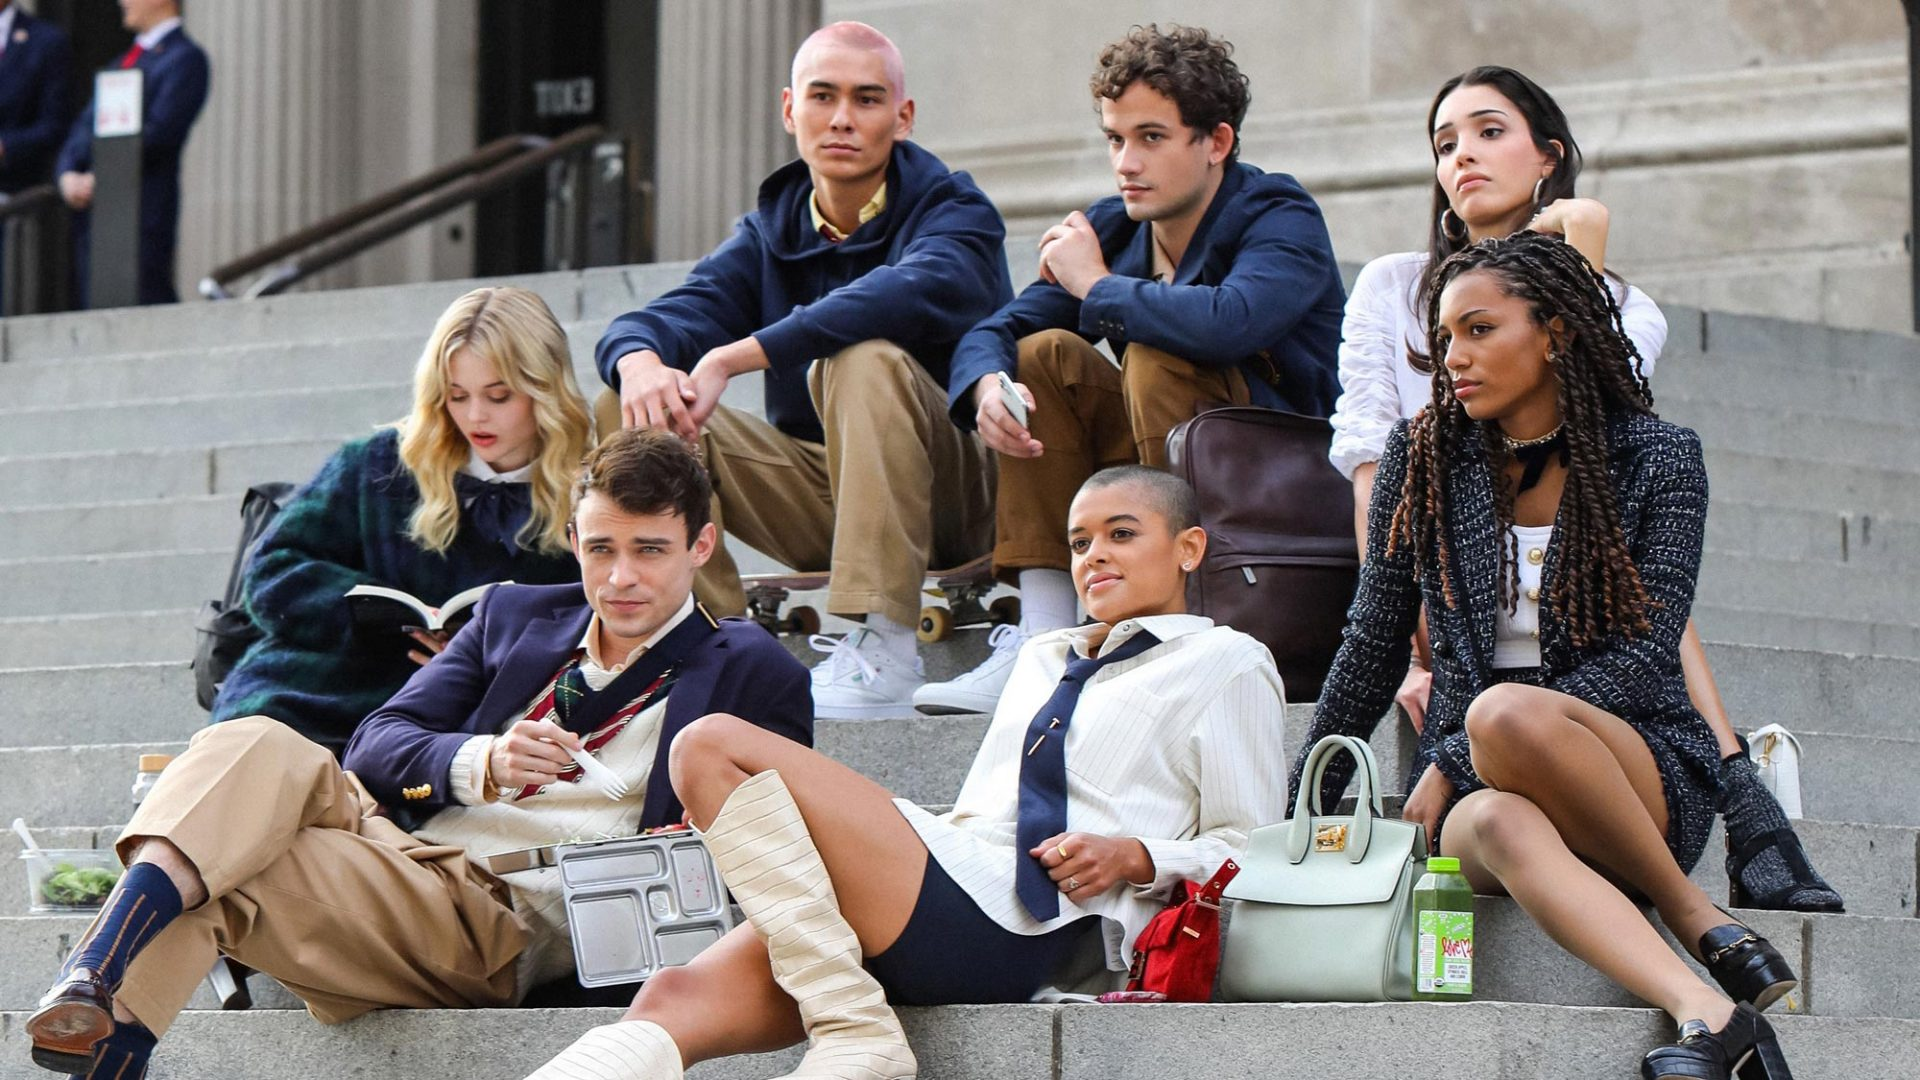 The cast of the rebooted Gossip Girl. Photo: HBO